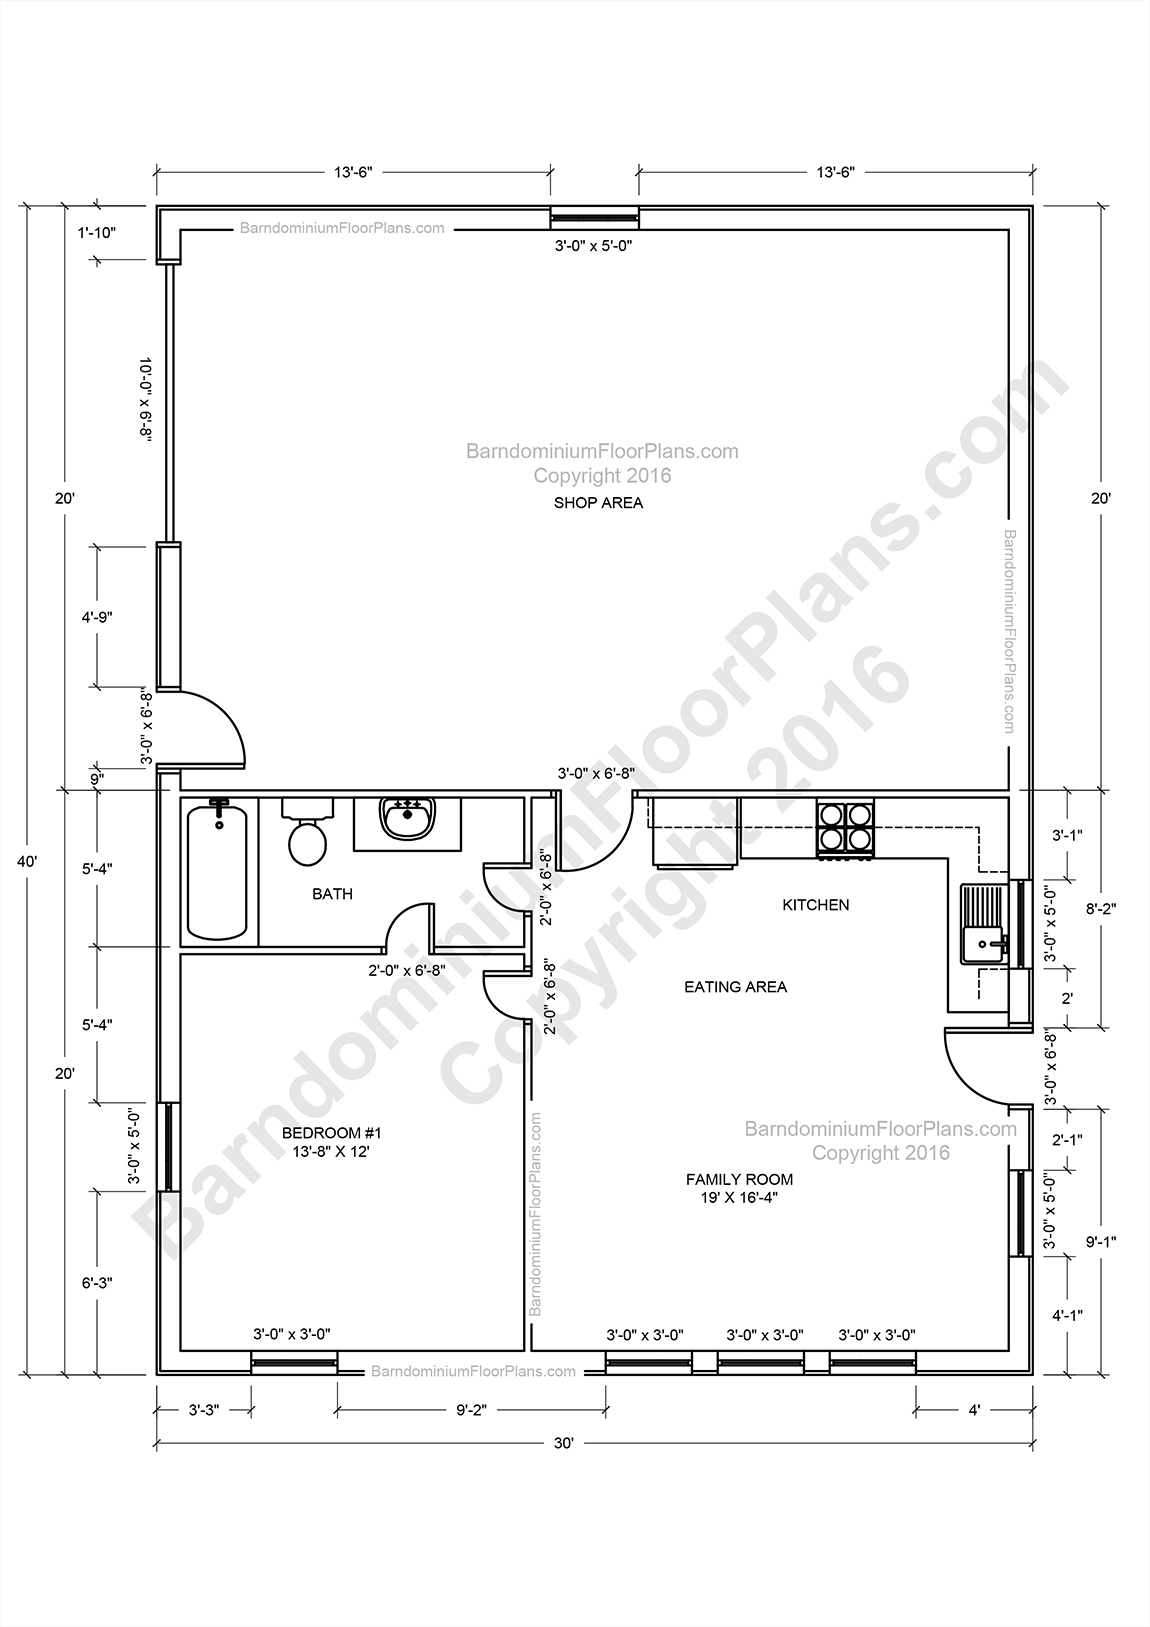 Barndominium floor plans pole barn house plans and metal for 30 x 60 garage plans